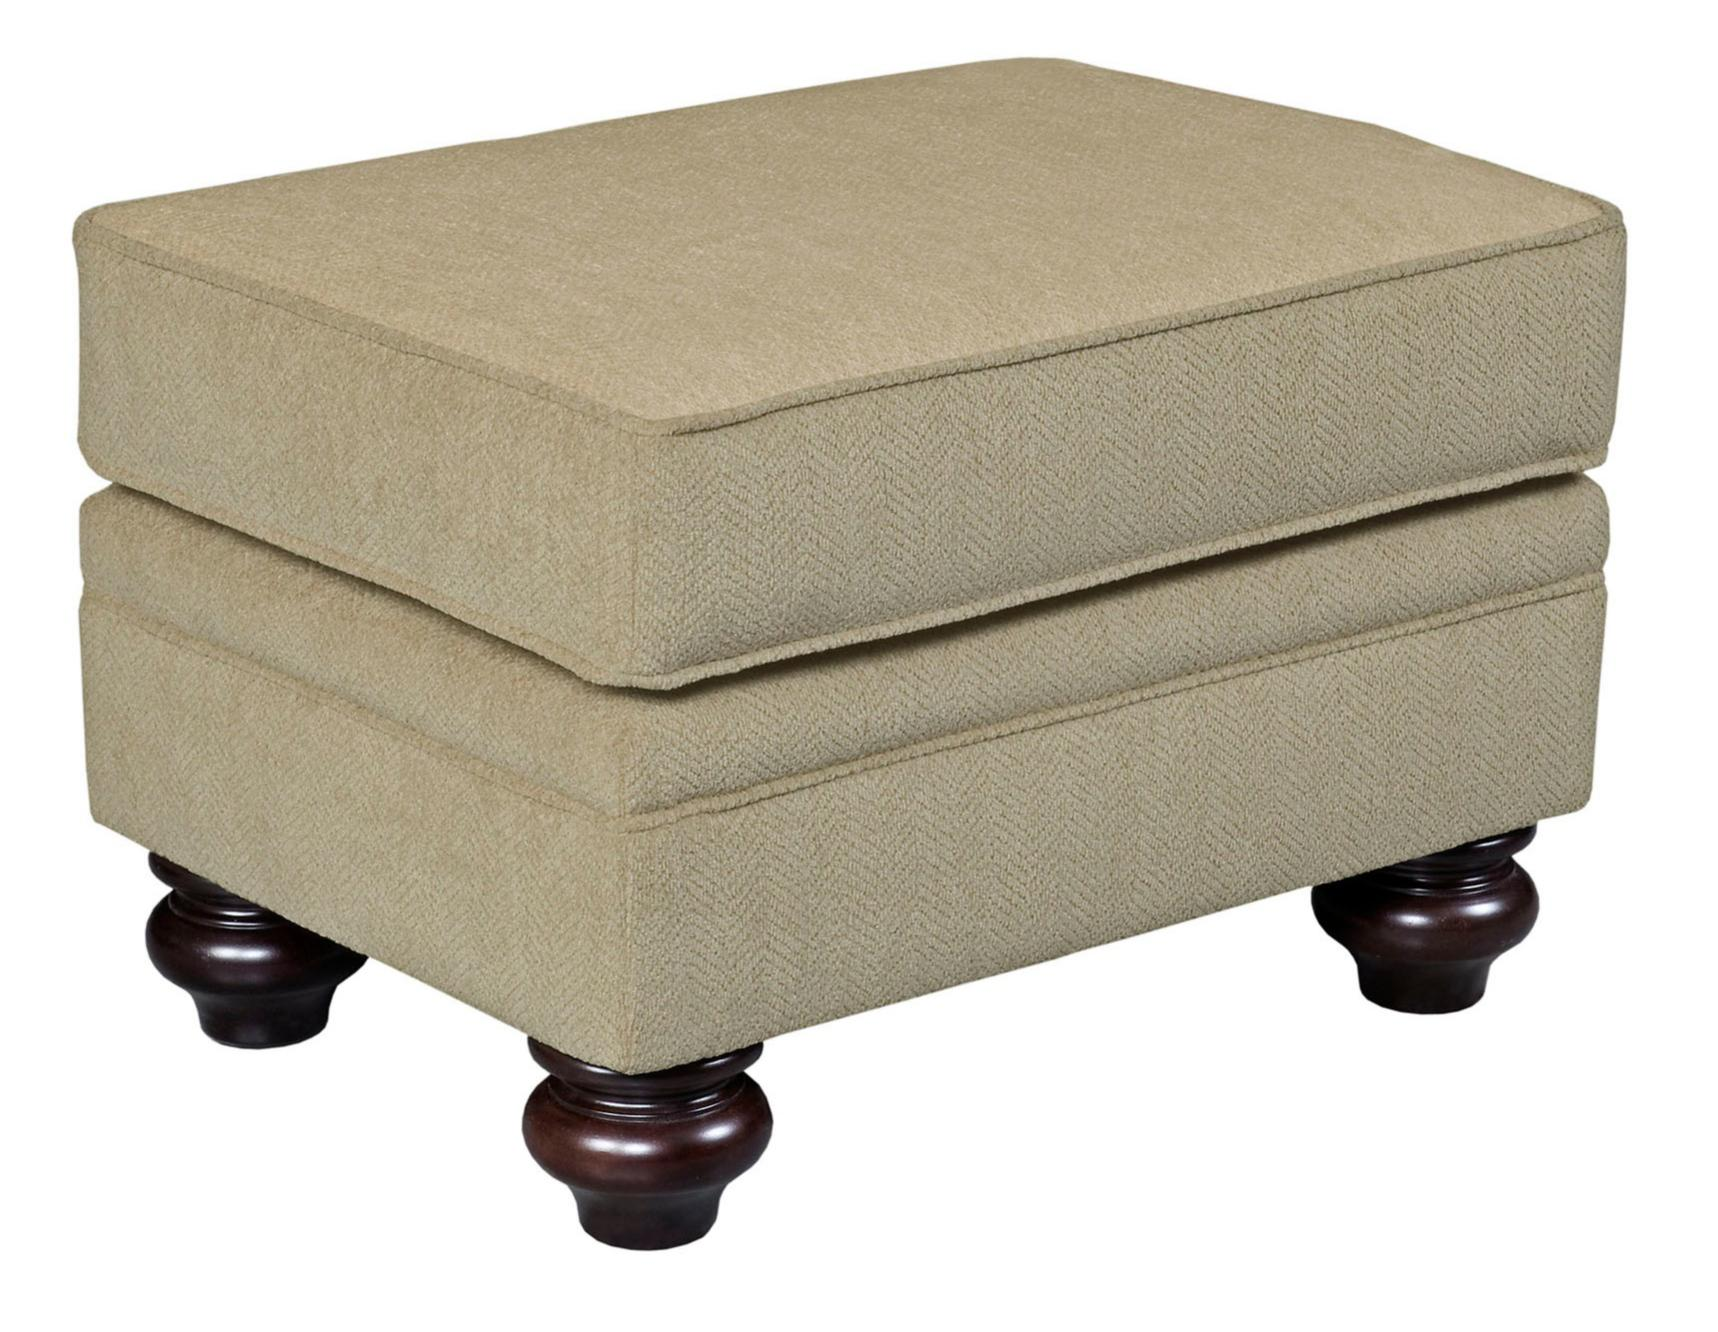 Broyhill Furniture Cassandra Traditional Ottoman - Item Number: 3688-5